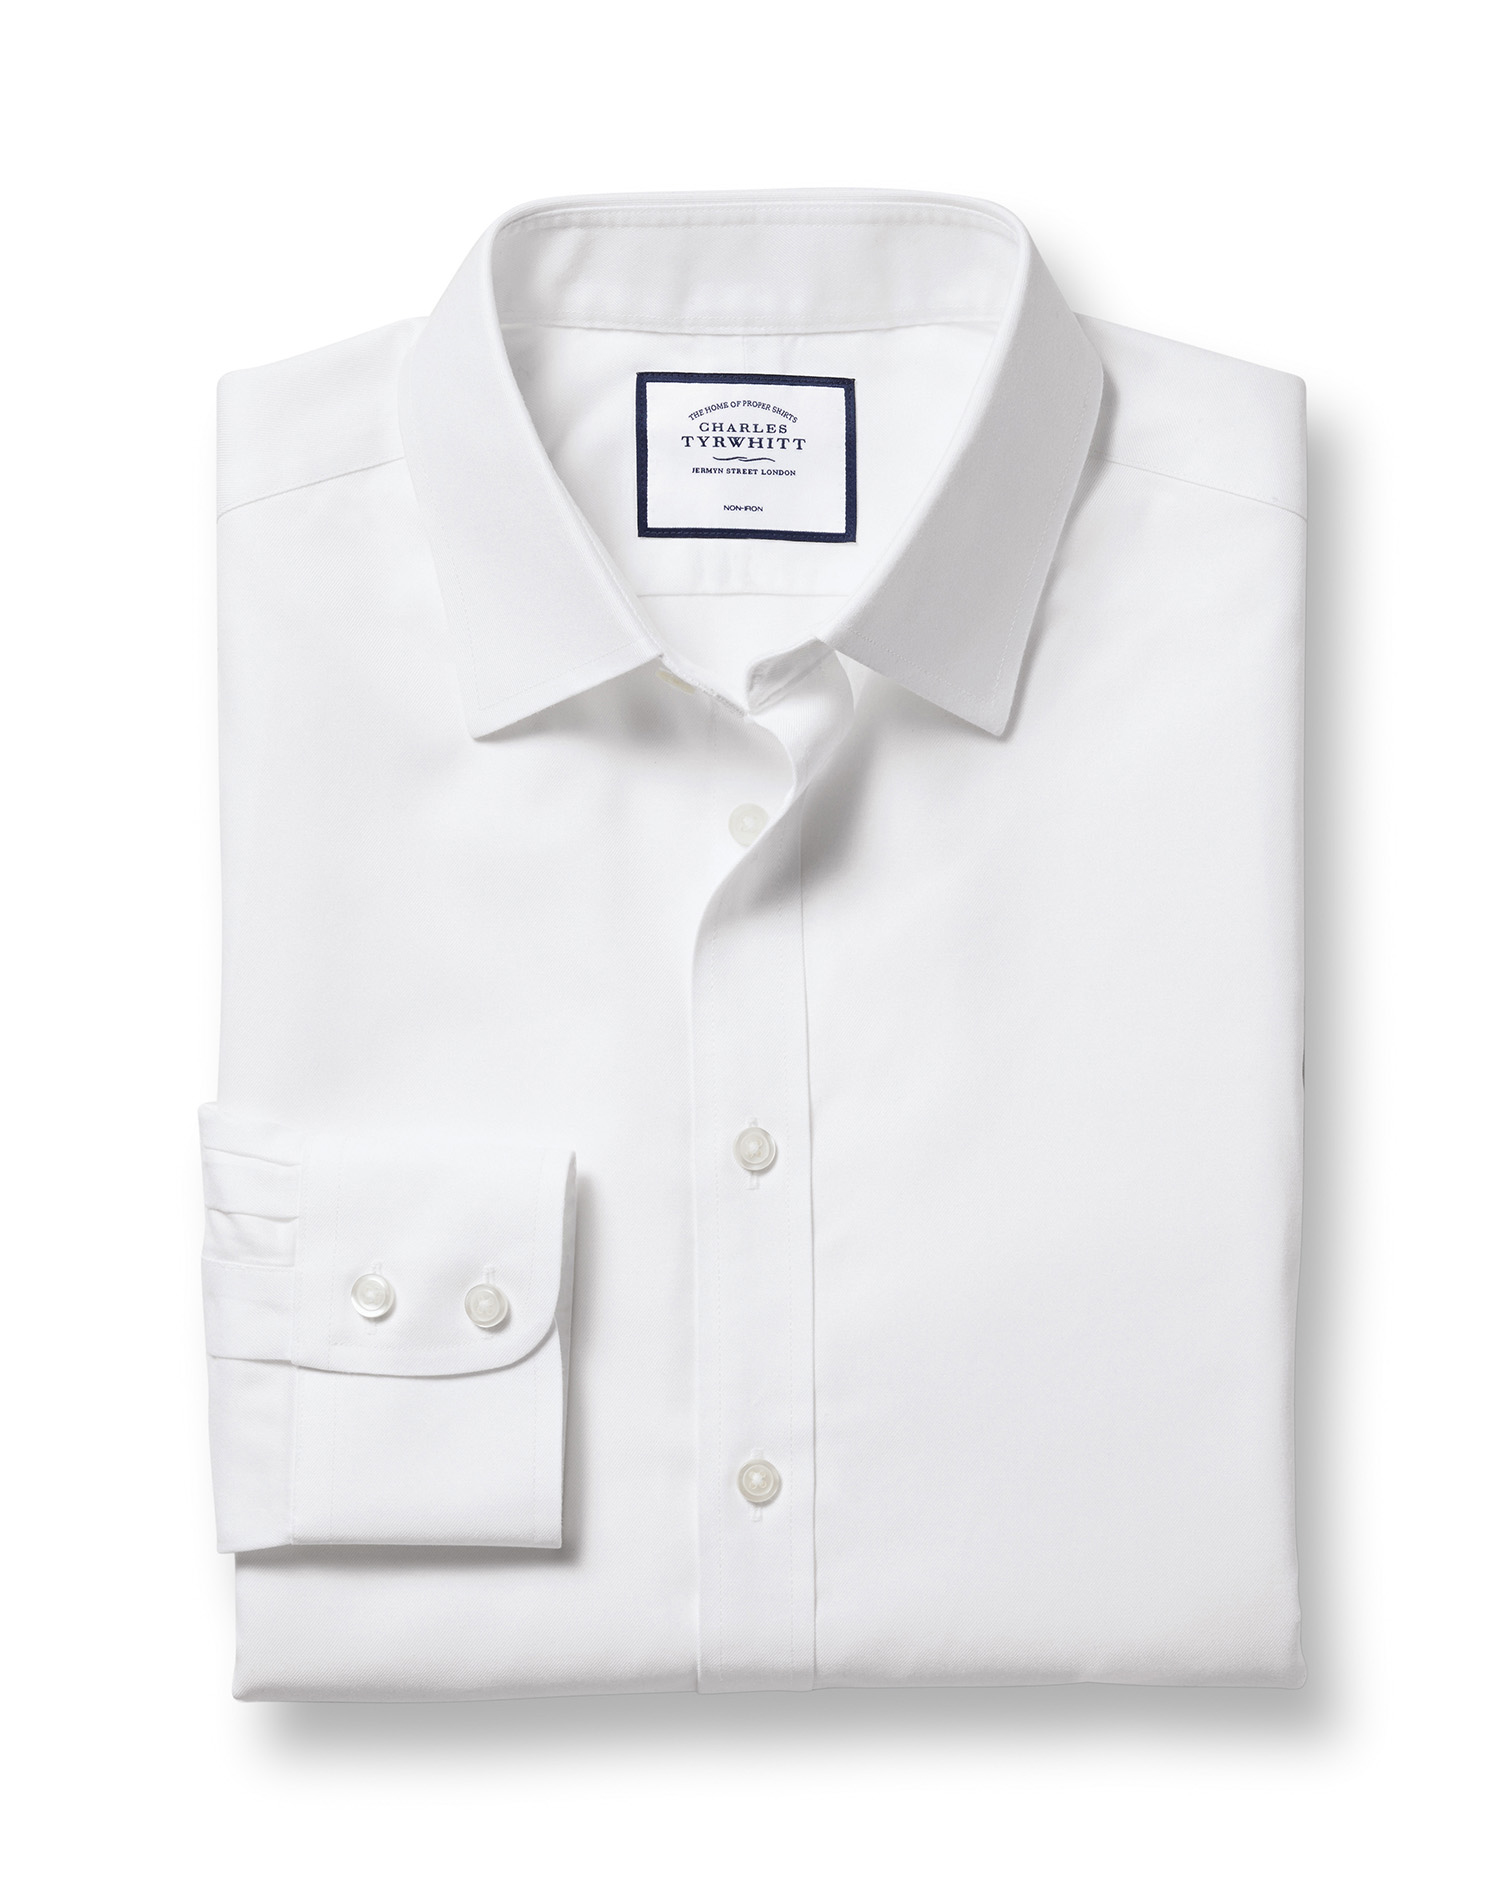 Classic Fit Non-Iron Twill White Cotton Formal Shirt Single Cuff Size 17/35 by Charles Tyrwhitt from Charles Tyrwhitt